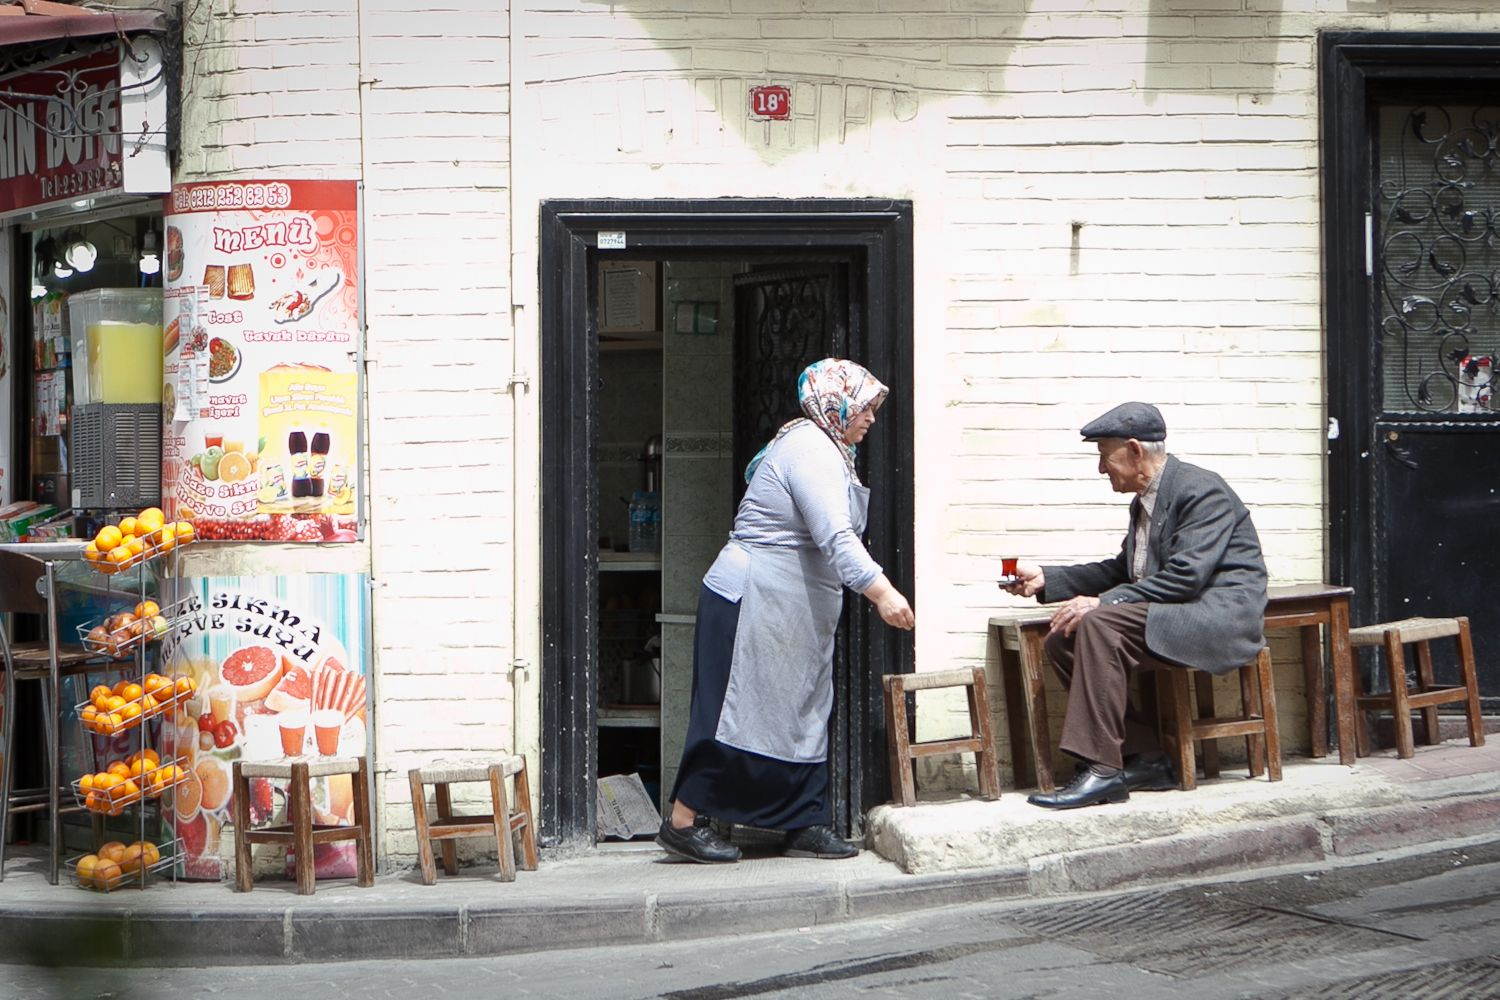 anders-anziehen: Neulich in Istanbul...